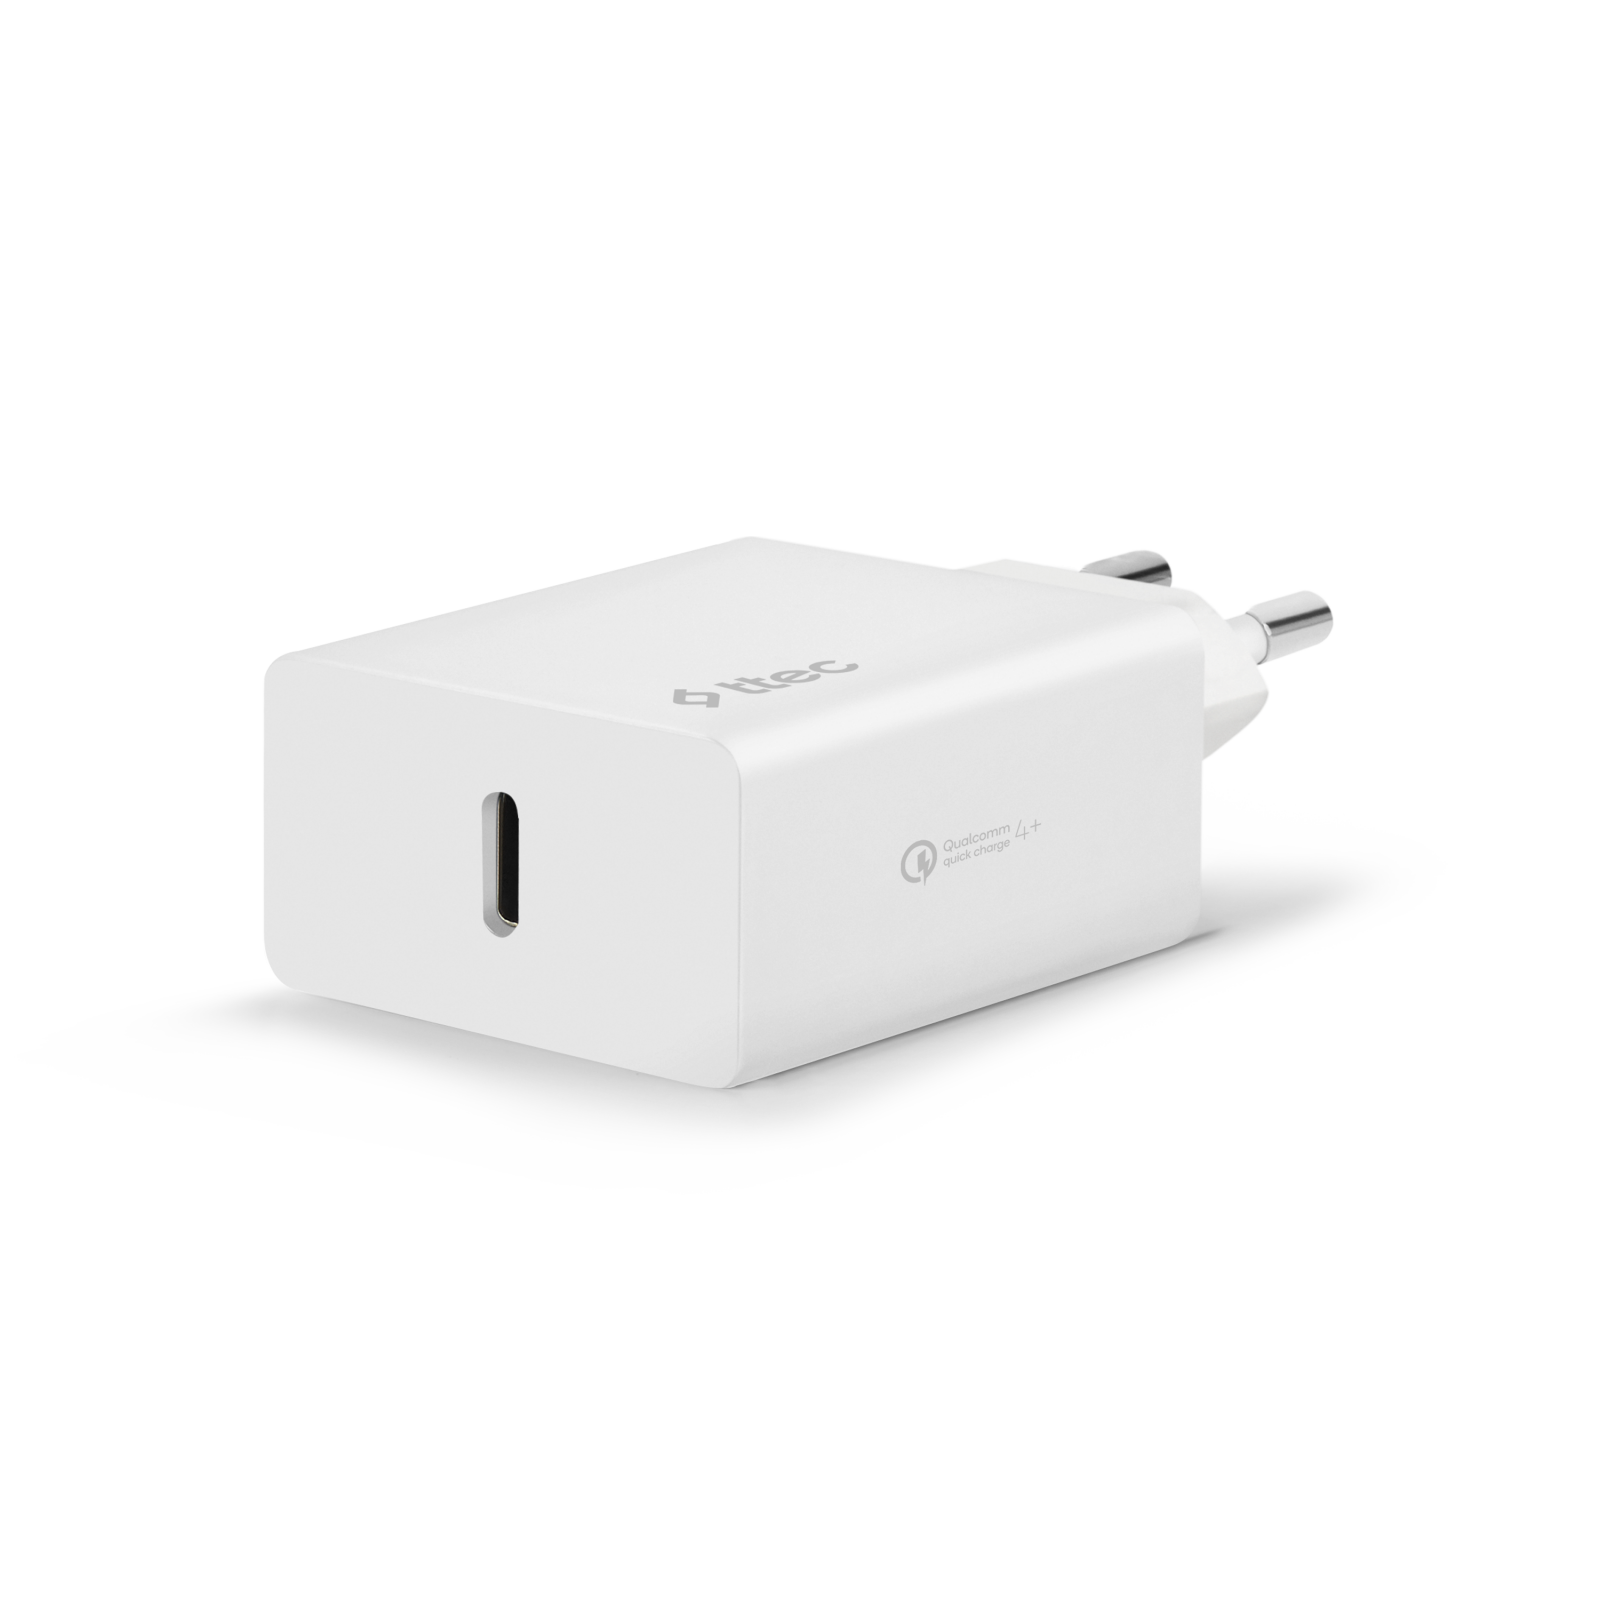 Адаптер ttec SmartCharger PD Travel Charger , 18W - Бял